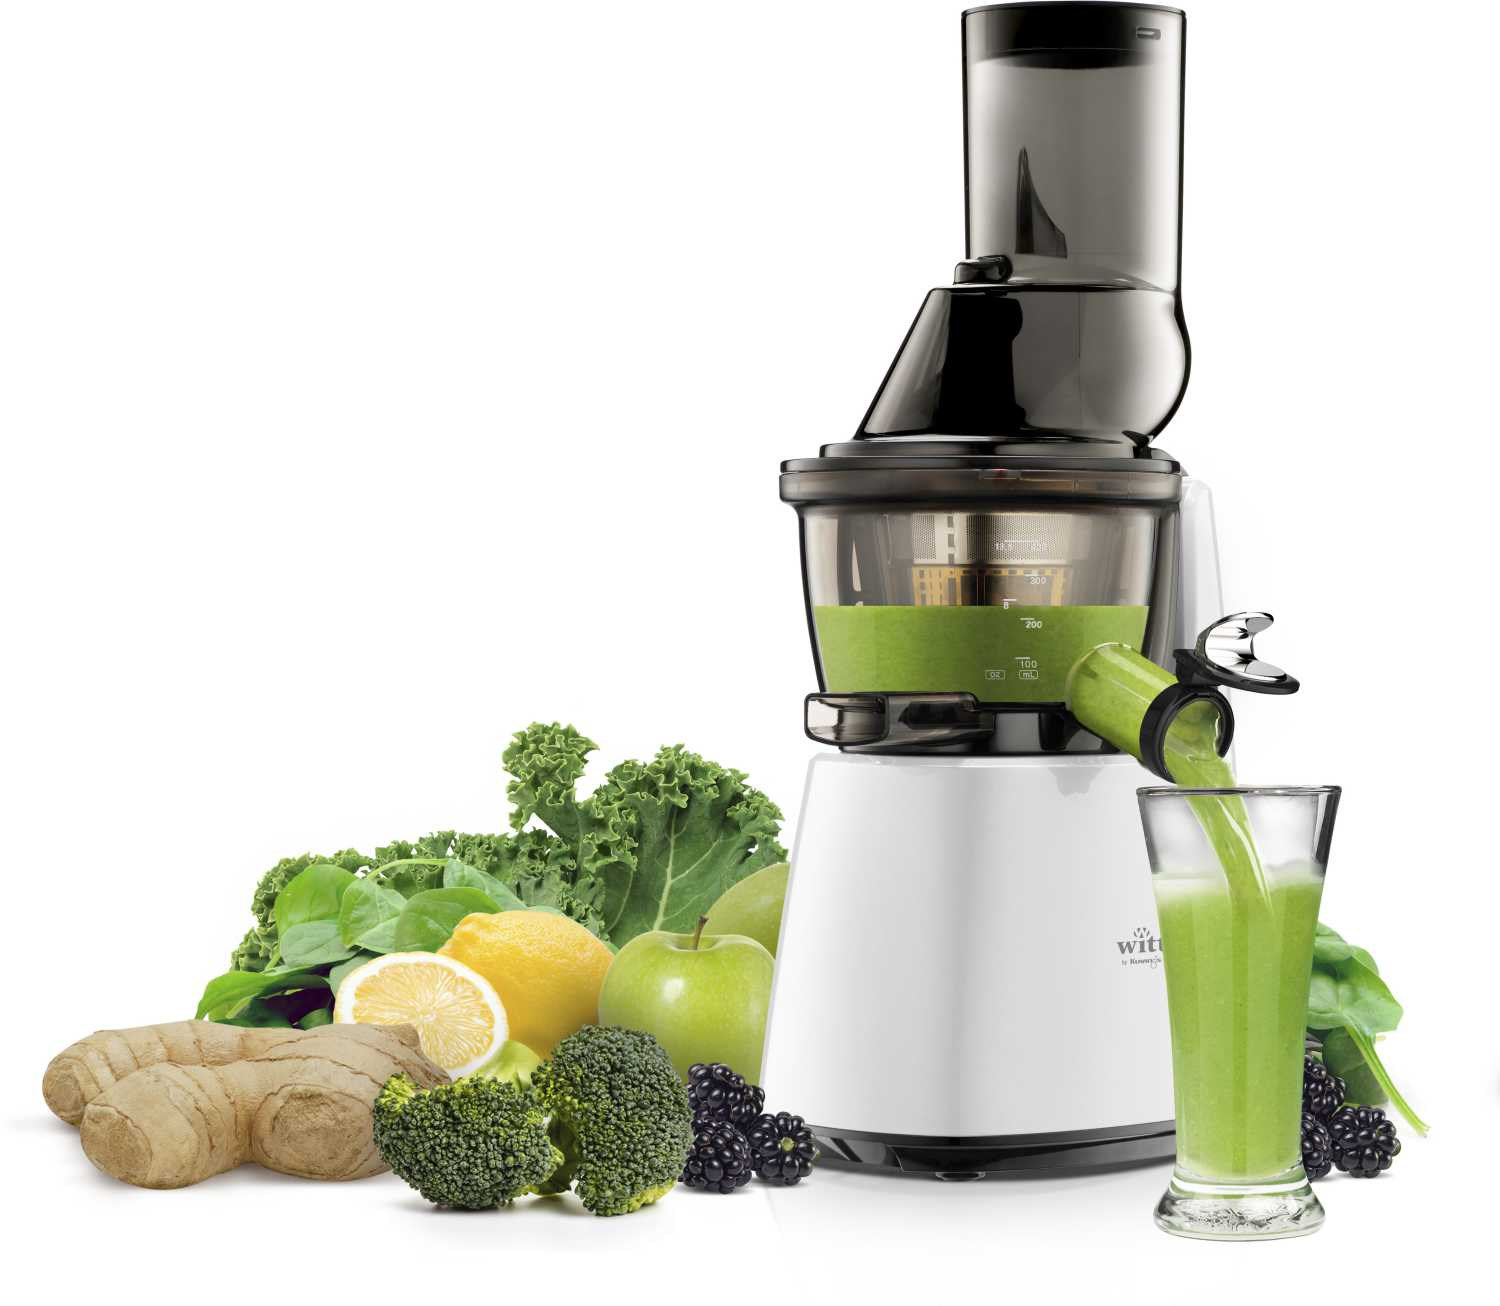 Witt by Kuvings Slowjuicer C9600 White